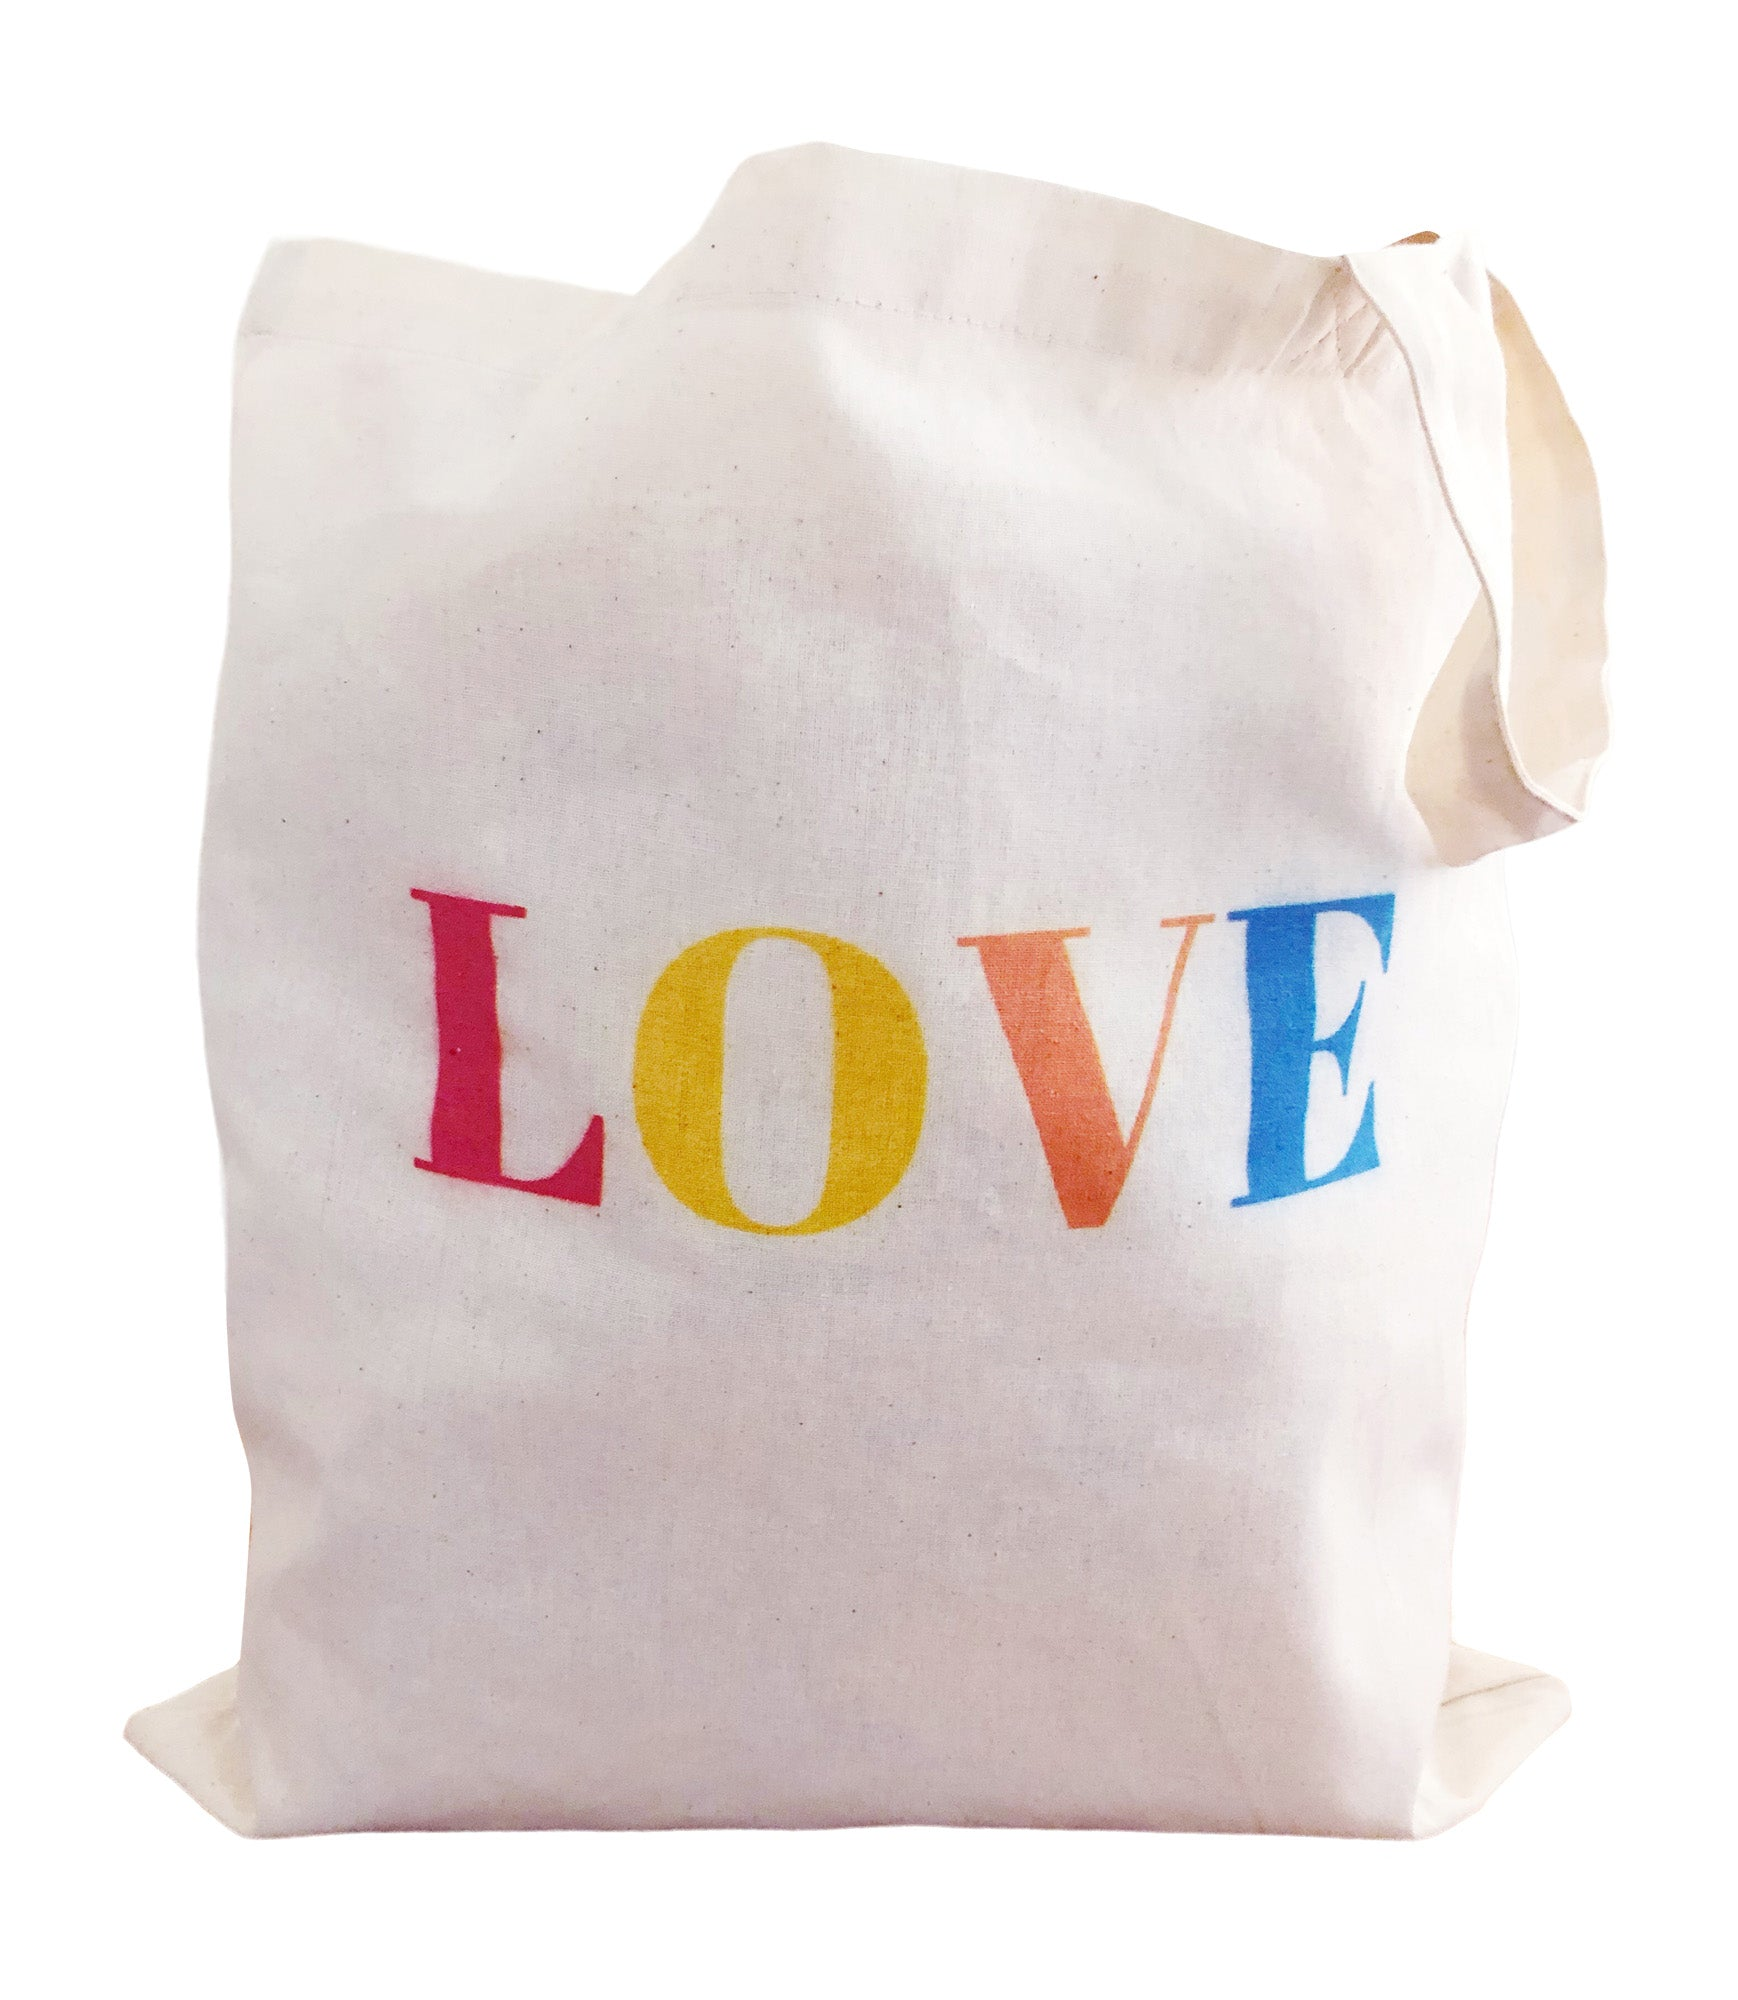 Love Reusable Grocery Tote Bag Made of Lightweight Cotton Fabric